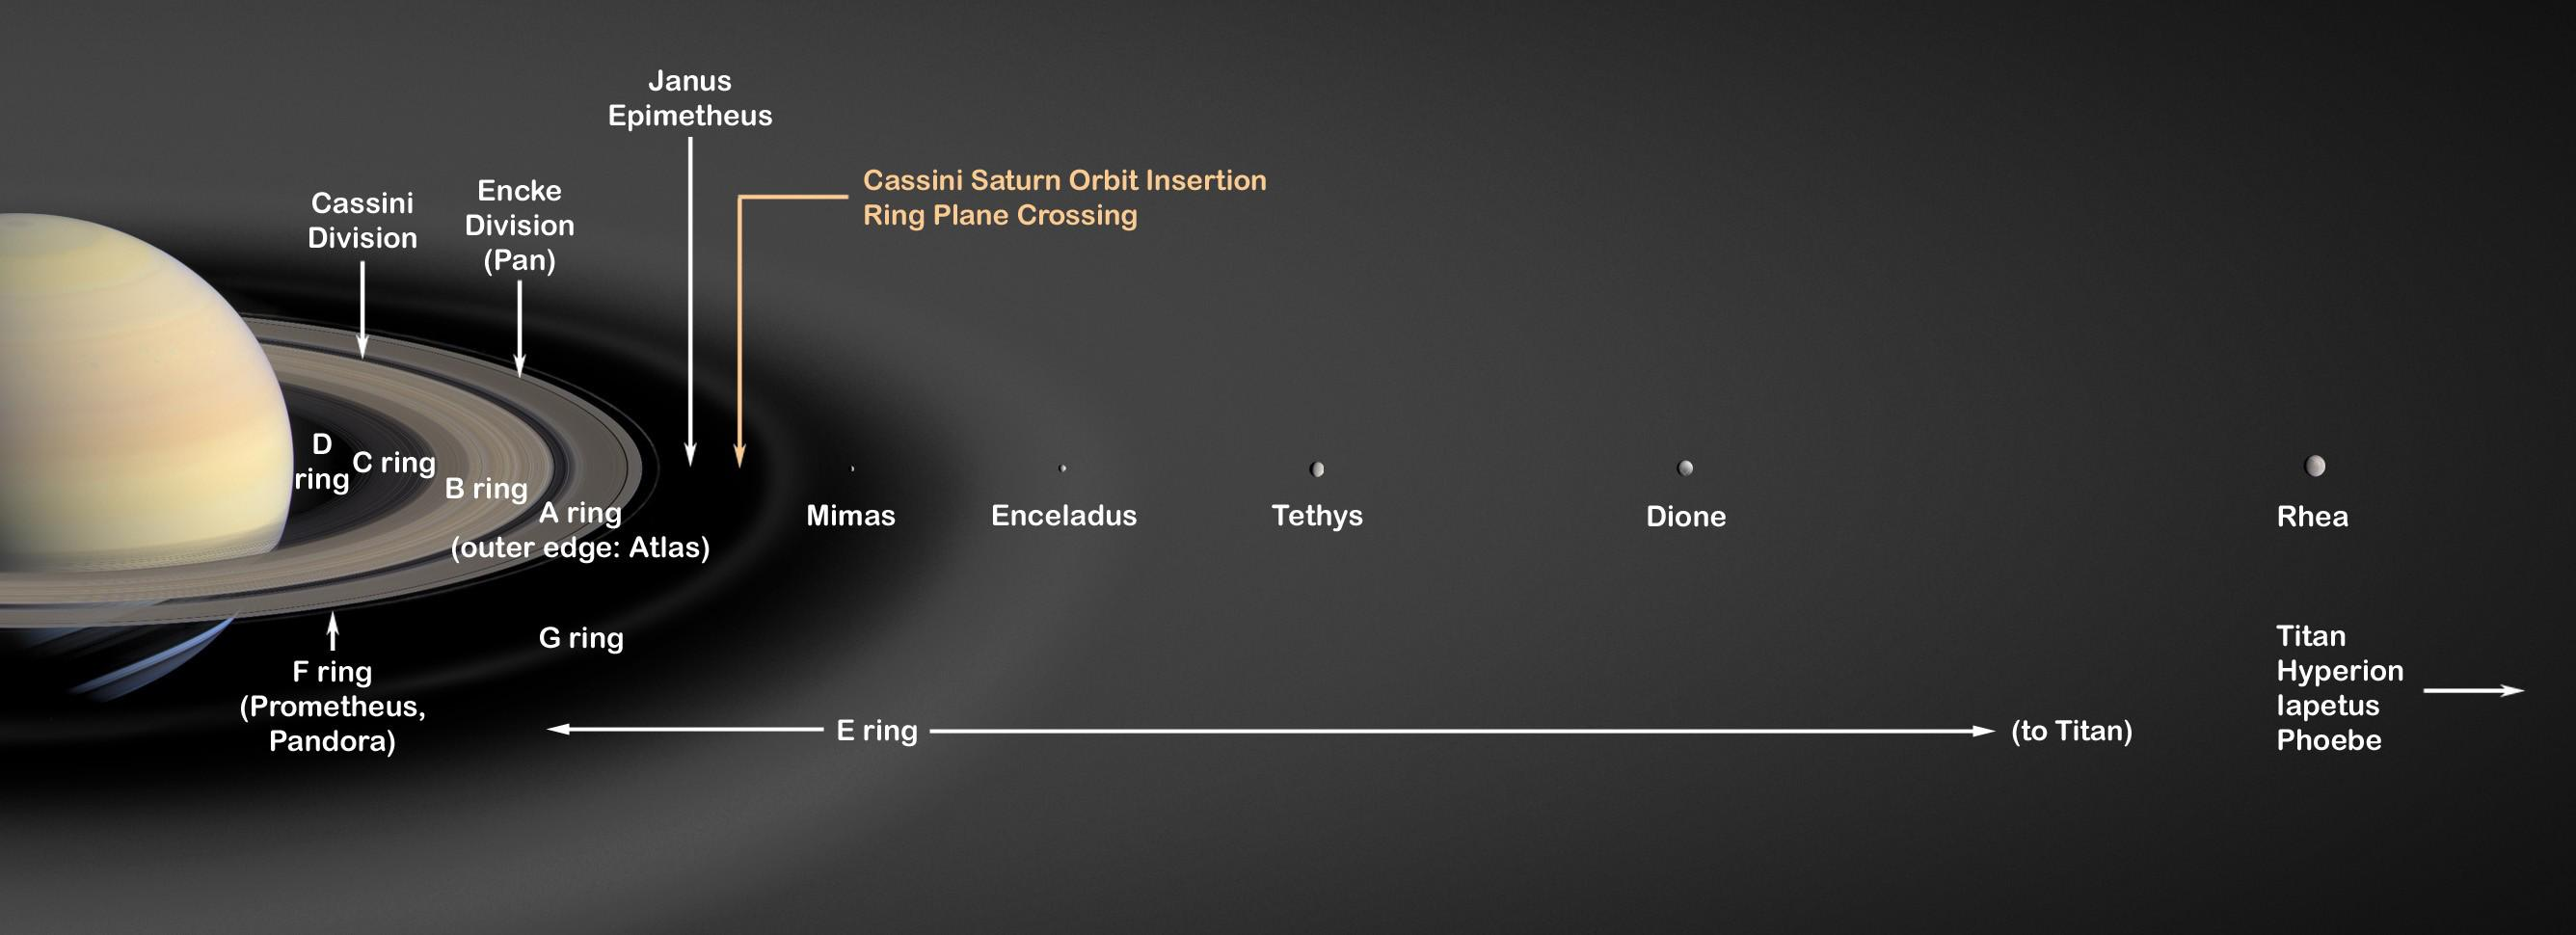 saturn moons and rings - photo #2